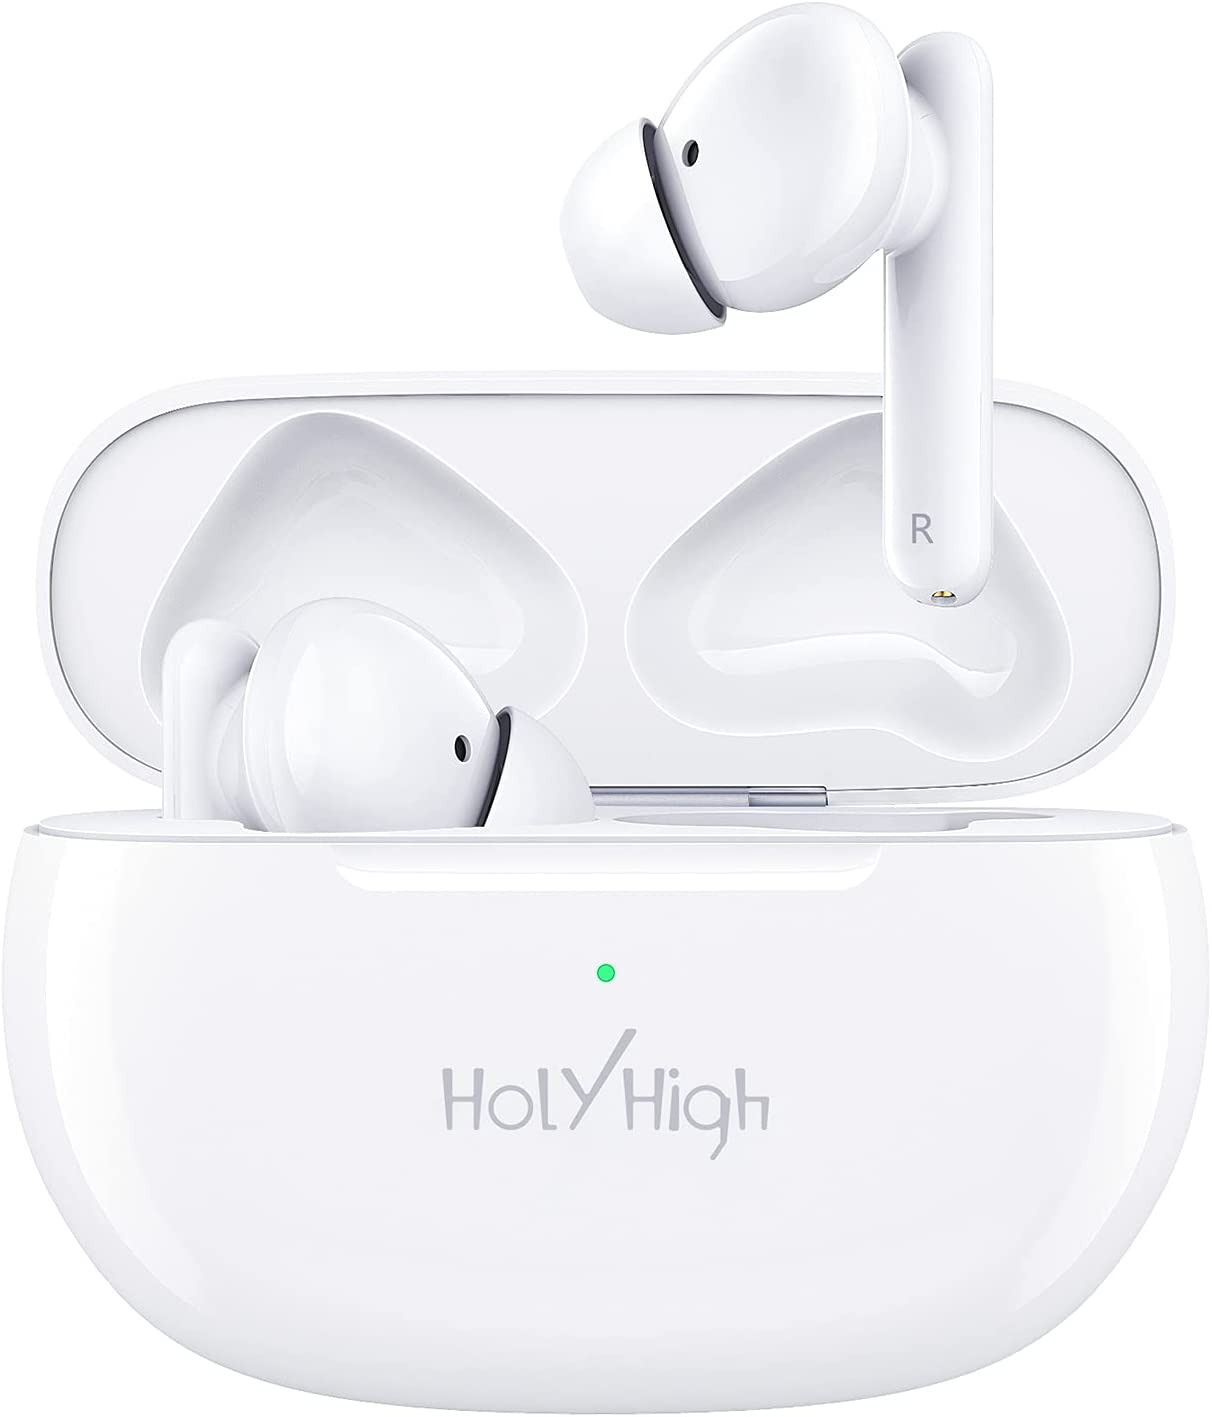 HolyHigh Wireless Headphones Bluetooth 5.0 Active Noise Cancelling Earphones IPX5 Waterproof ANC in-Ear Earbuds with 4 Built-in Mics Long Playtime Deep Bass for Music and Clear Calls